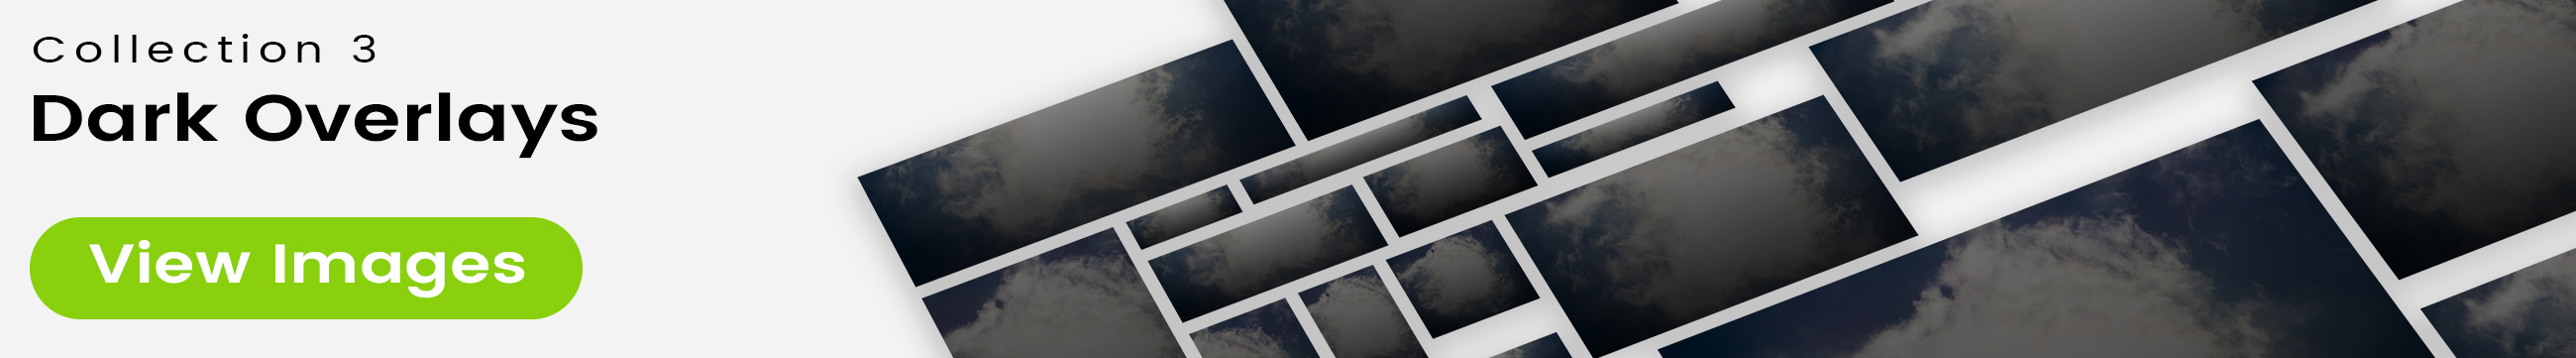 Full screen height mosaic with Photo 9477 in the background. 25 free bonus stock images from Collection 3 - Dark Overlays are on top, angled with perspective for a 3D effect, and a drop shadow for depth. Designed in Photoshop.